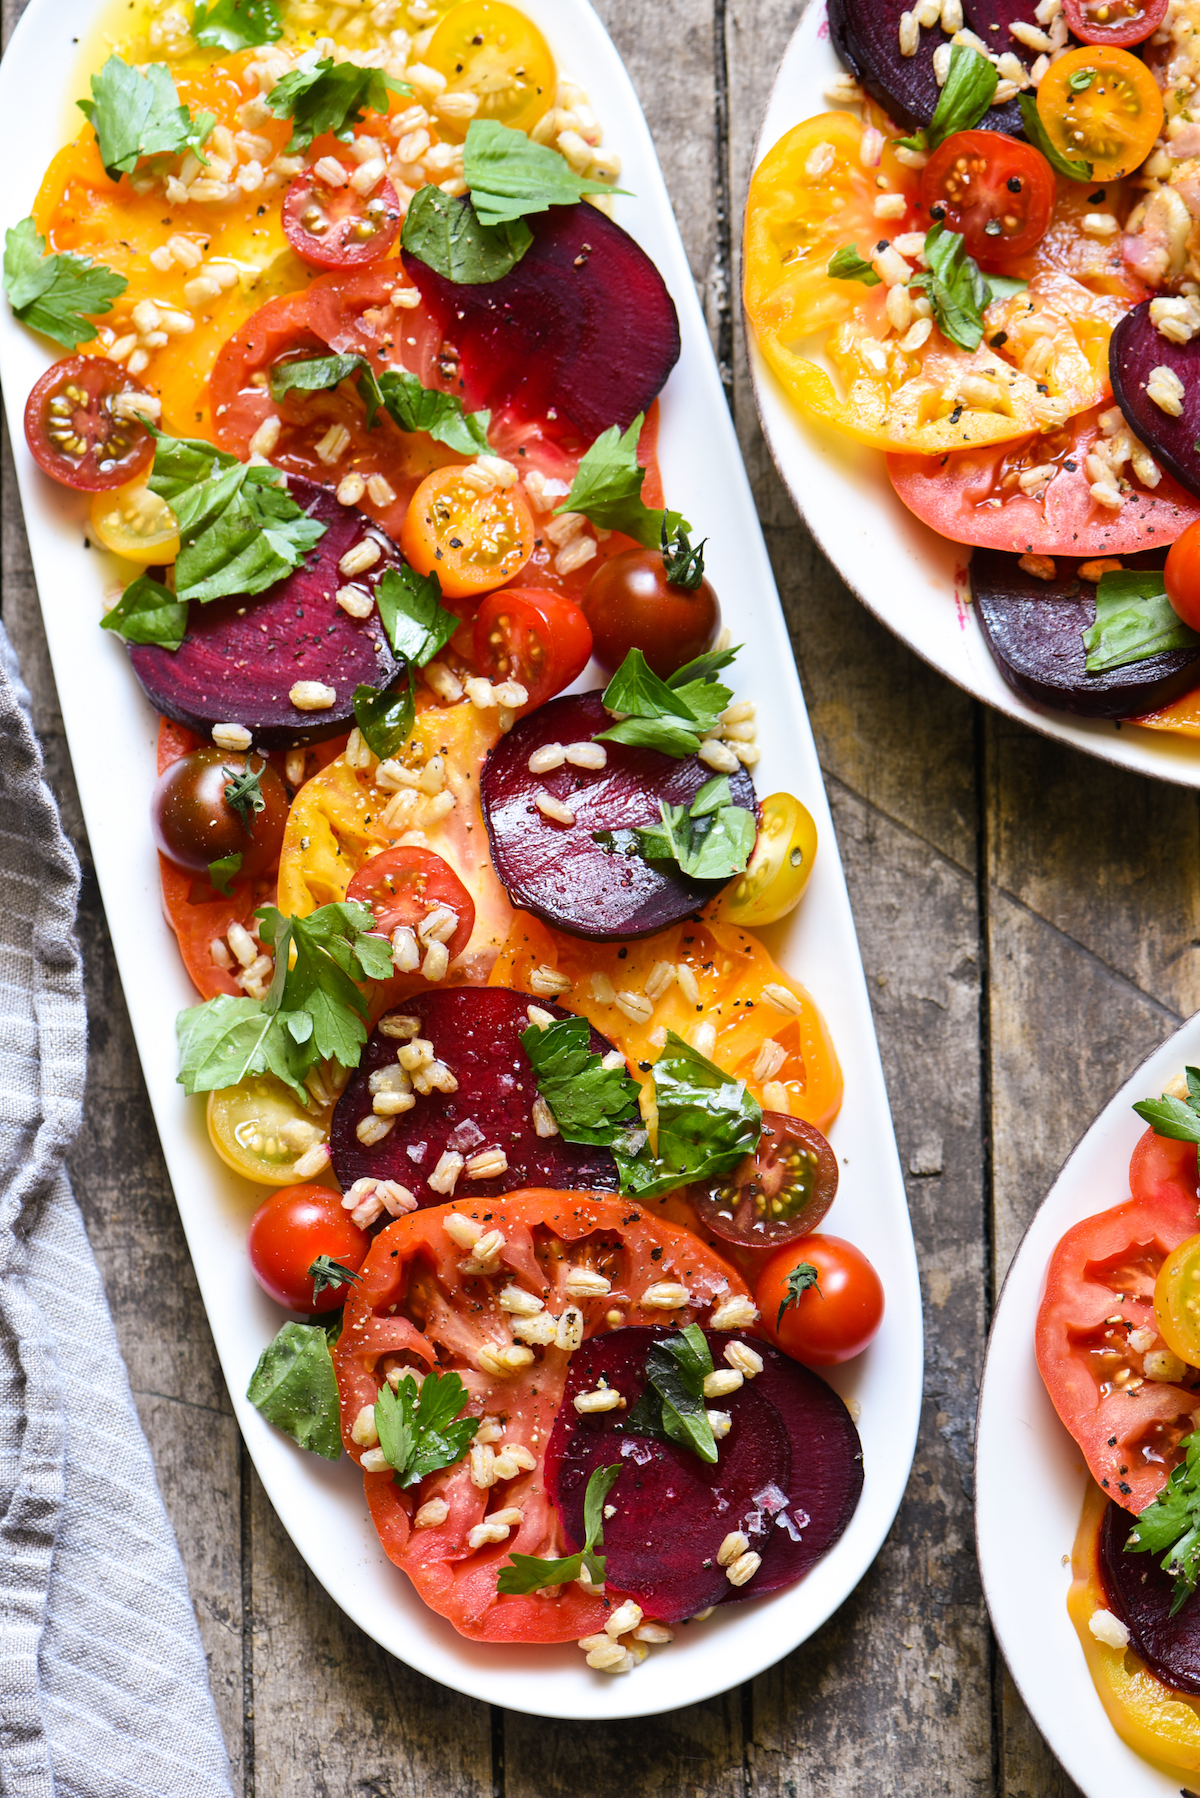 heirloom-tomato-beet-barley-salad-with-herb-vinaigrette-6